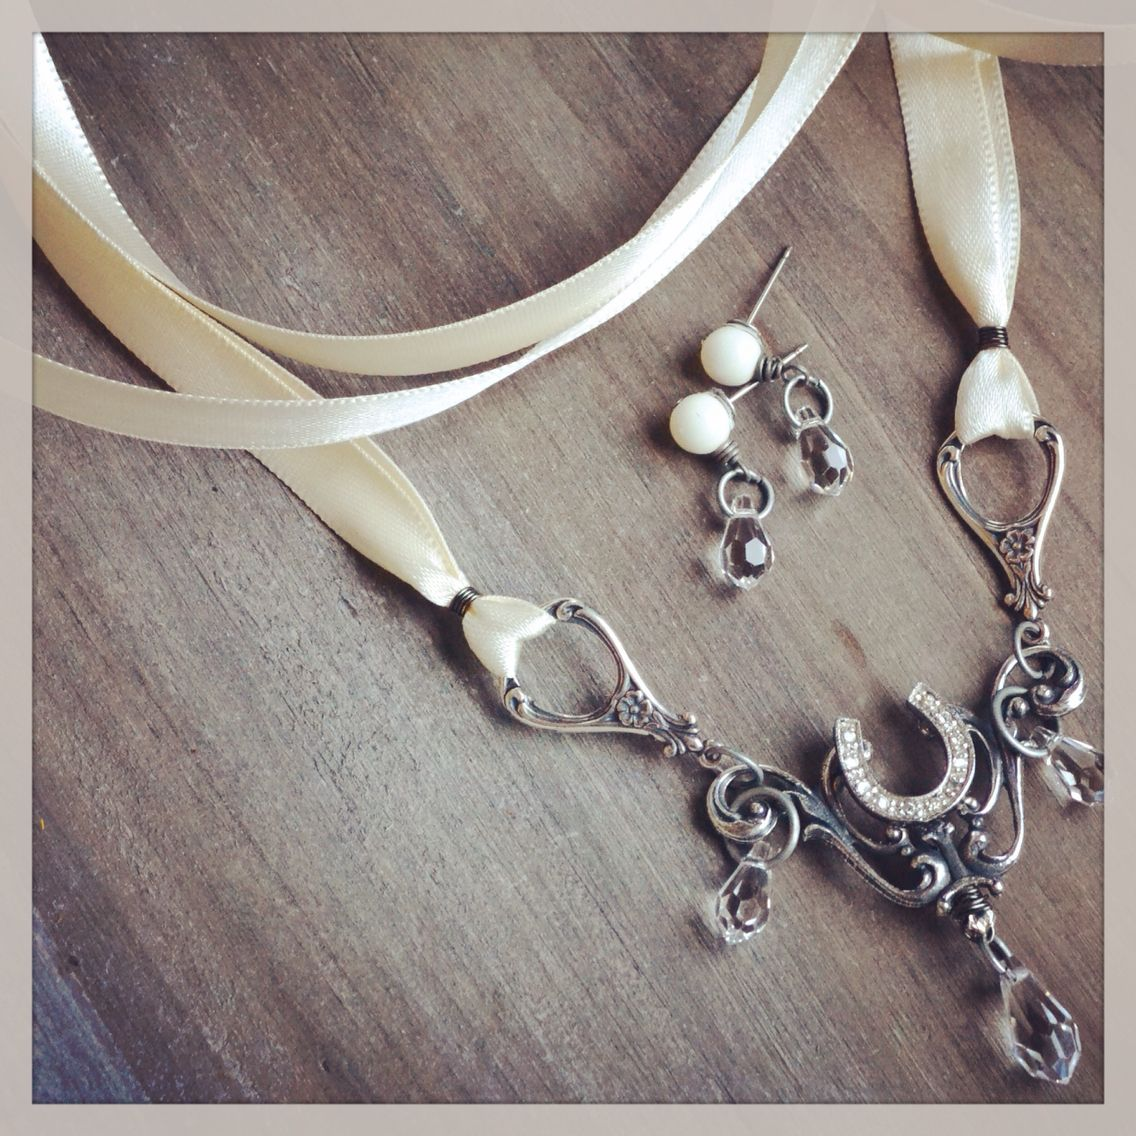 Bridal Jewelry Country Wedding Chic Victorian Style Horseshoe Necklace